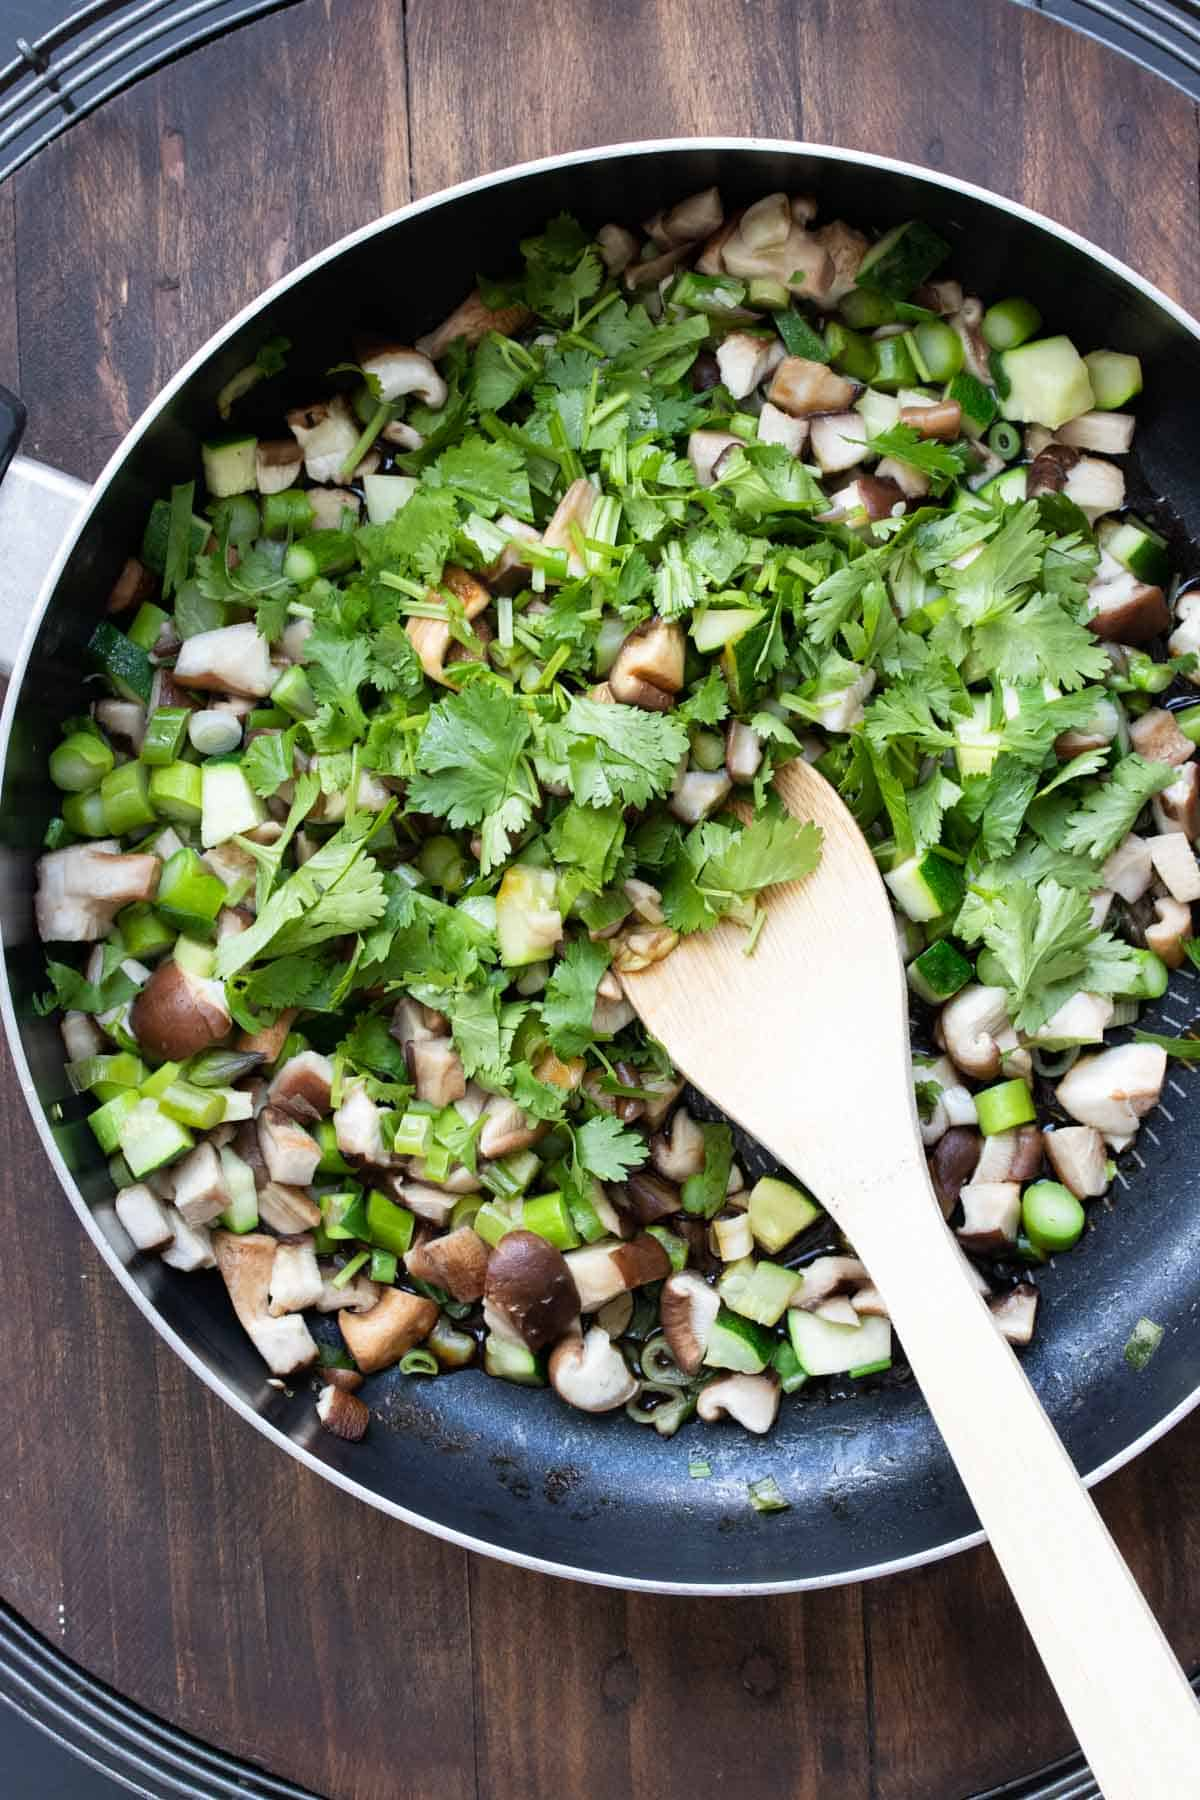 Chopped mushrooms, asparagus and cilantro being mixed in a pan by a wooden spoon